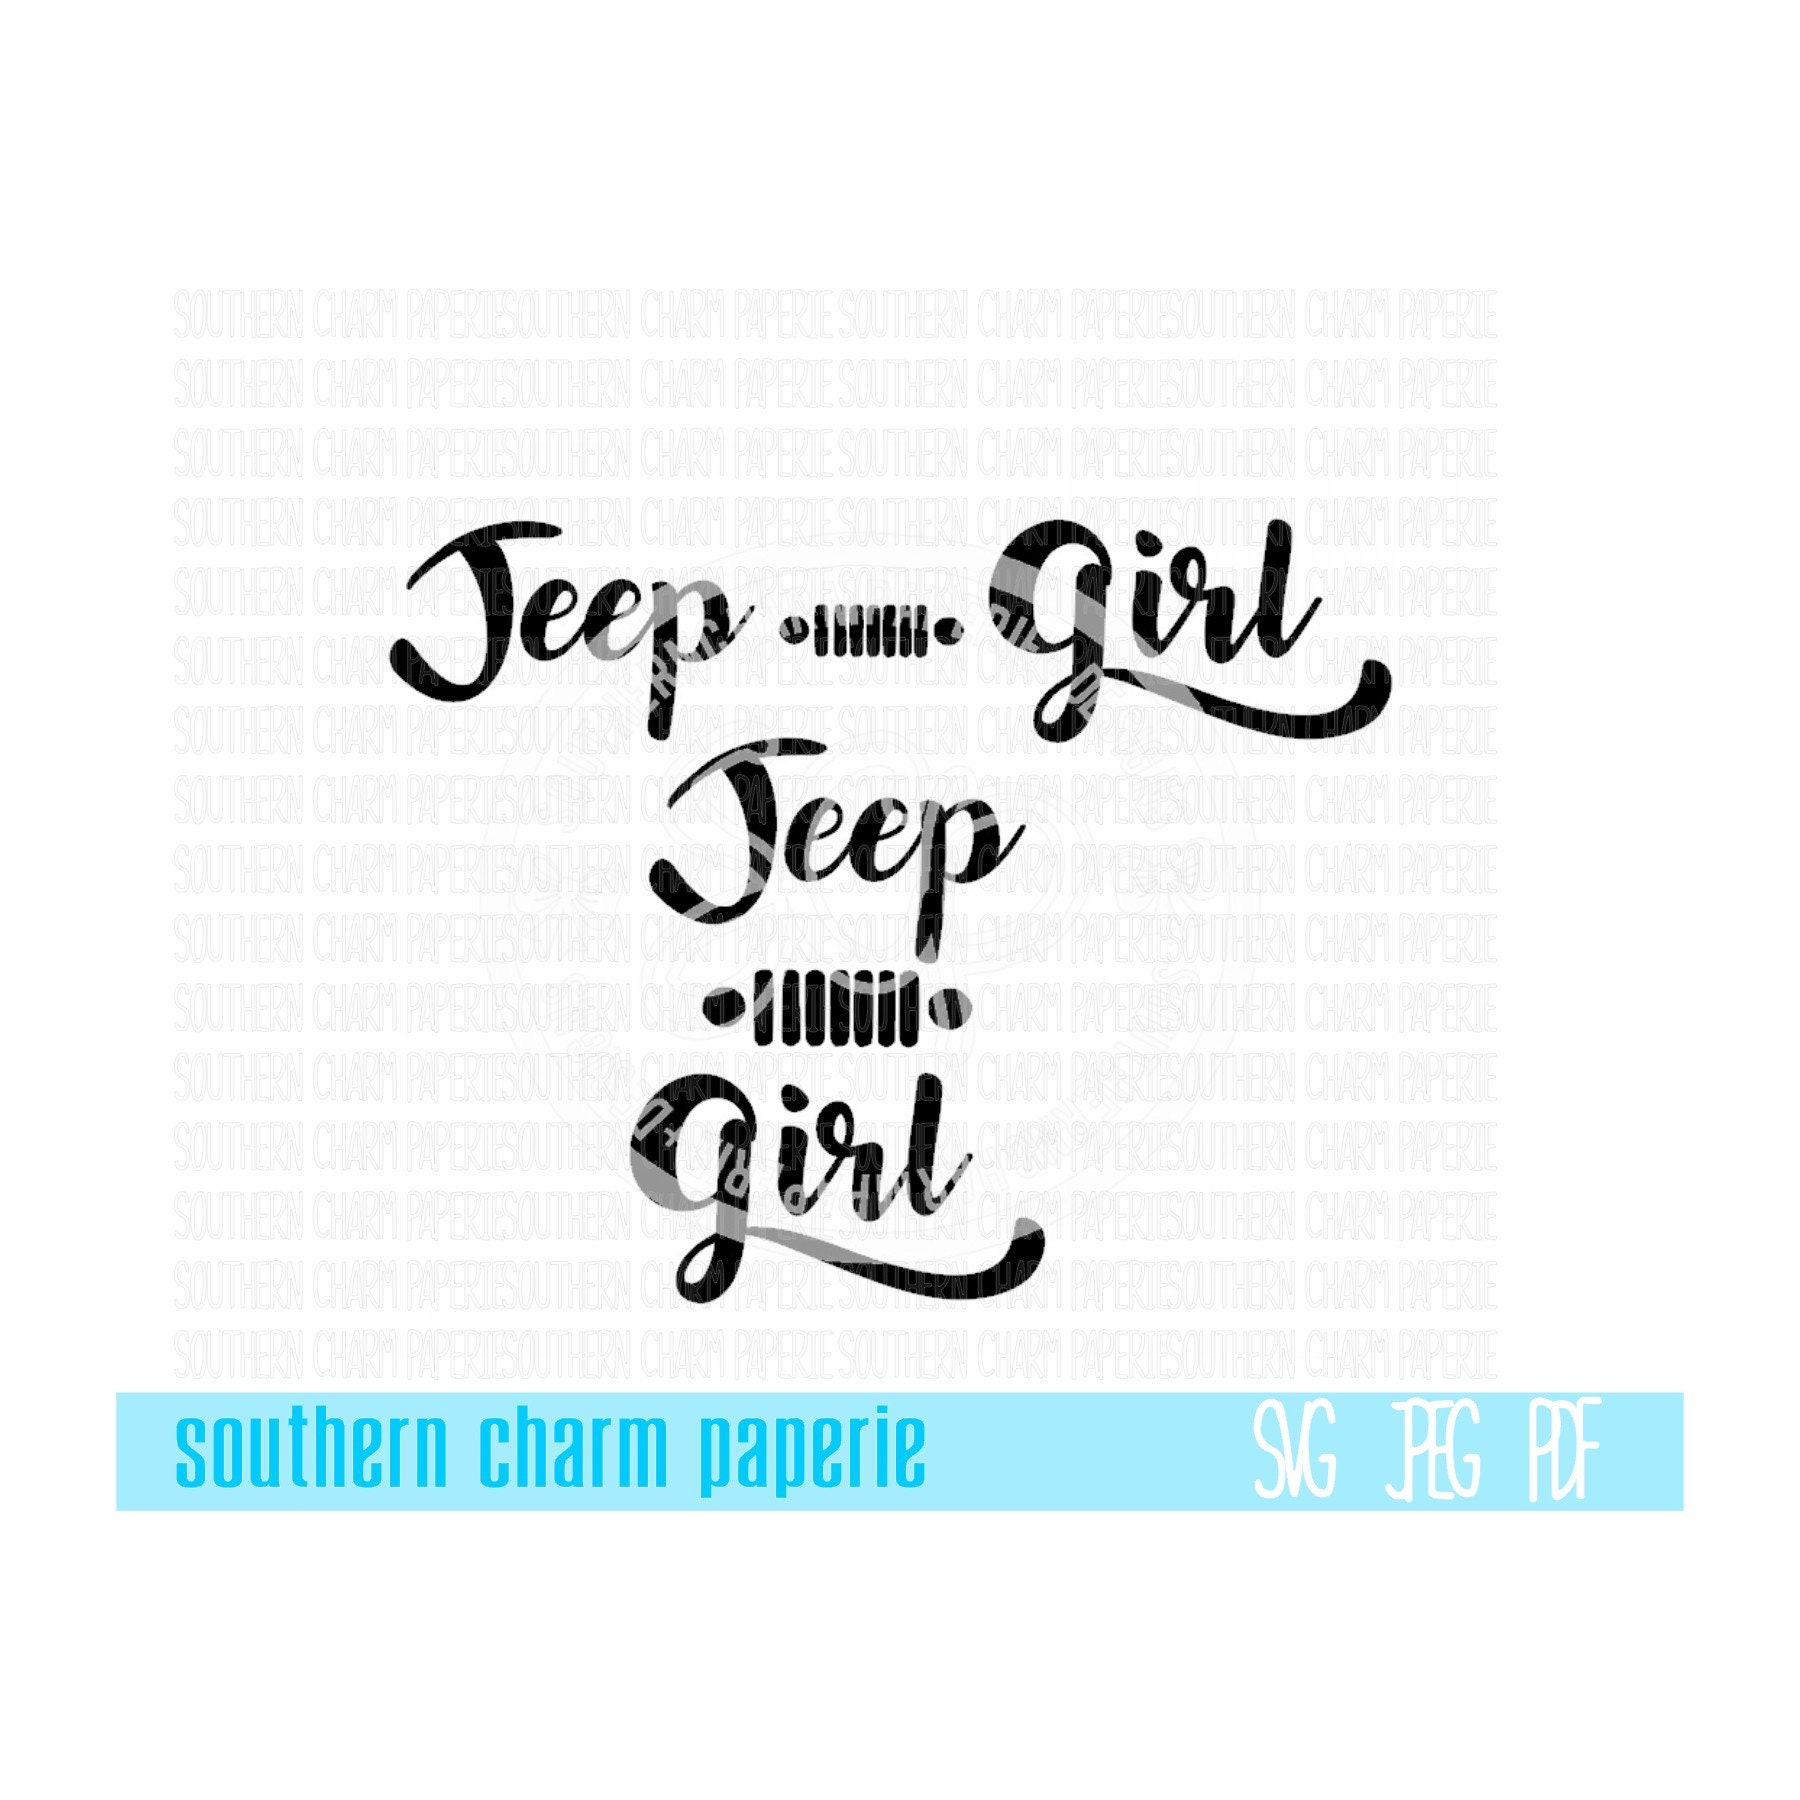 Jeep Girl 2 Versions Jeep Wrangler Offroad 4x4 Svg Cut File Etsy